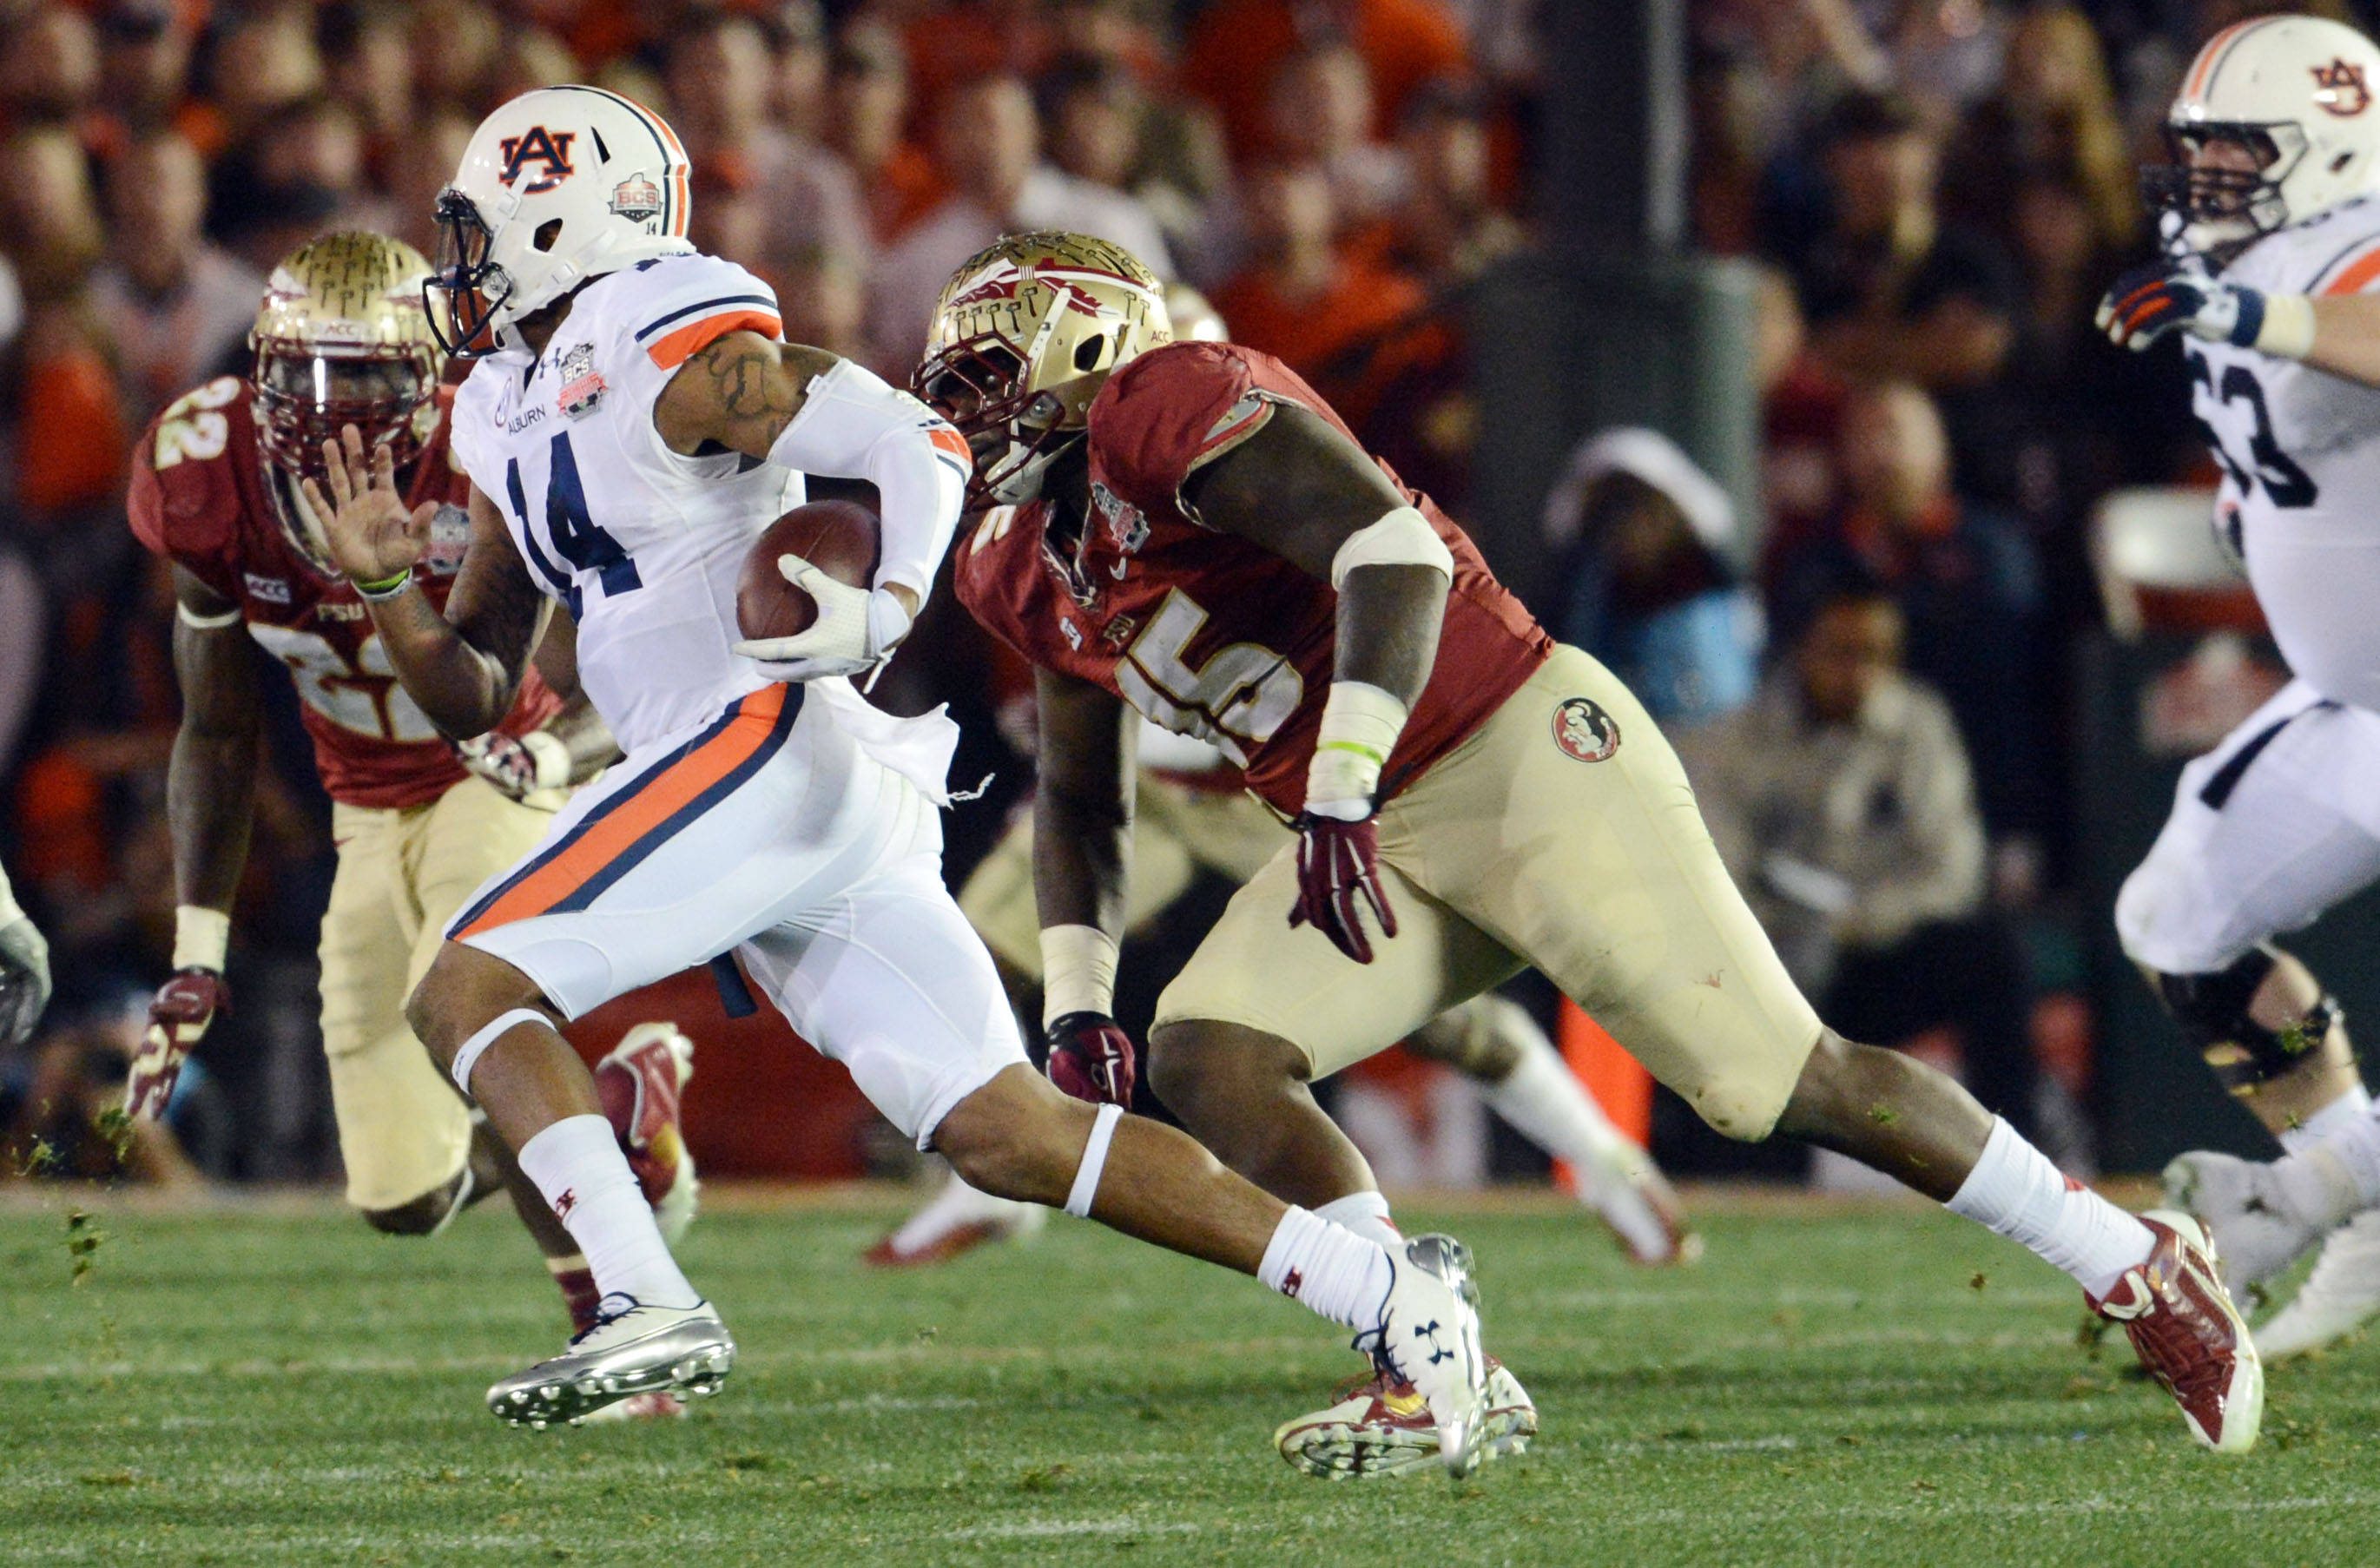 Jan 6, 2014; Pasadena, CA, USA; Auburn Tigers quarterback Nick Marshall (14) runs away from Florida State Seminoles defensive end Mario Edwards Jr. (15) during the first half of the 2014 BCS National Championship game at the Rose Bowl.  Mandatory Credit: Jayne Kamin-Oncea-USA TODAY Sports